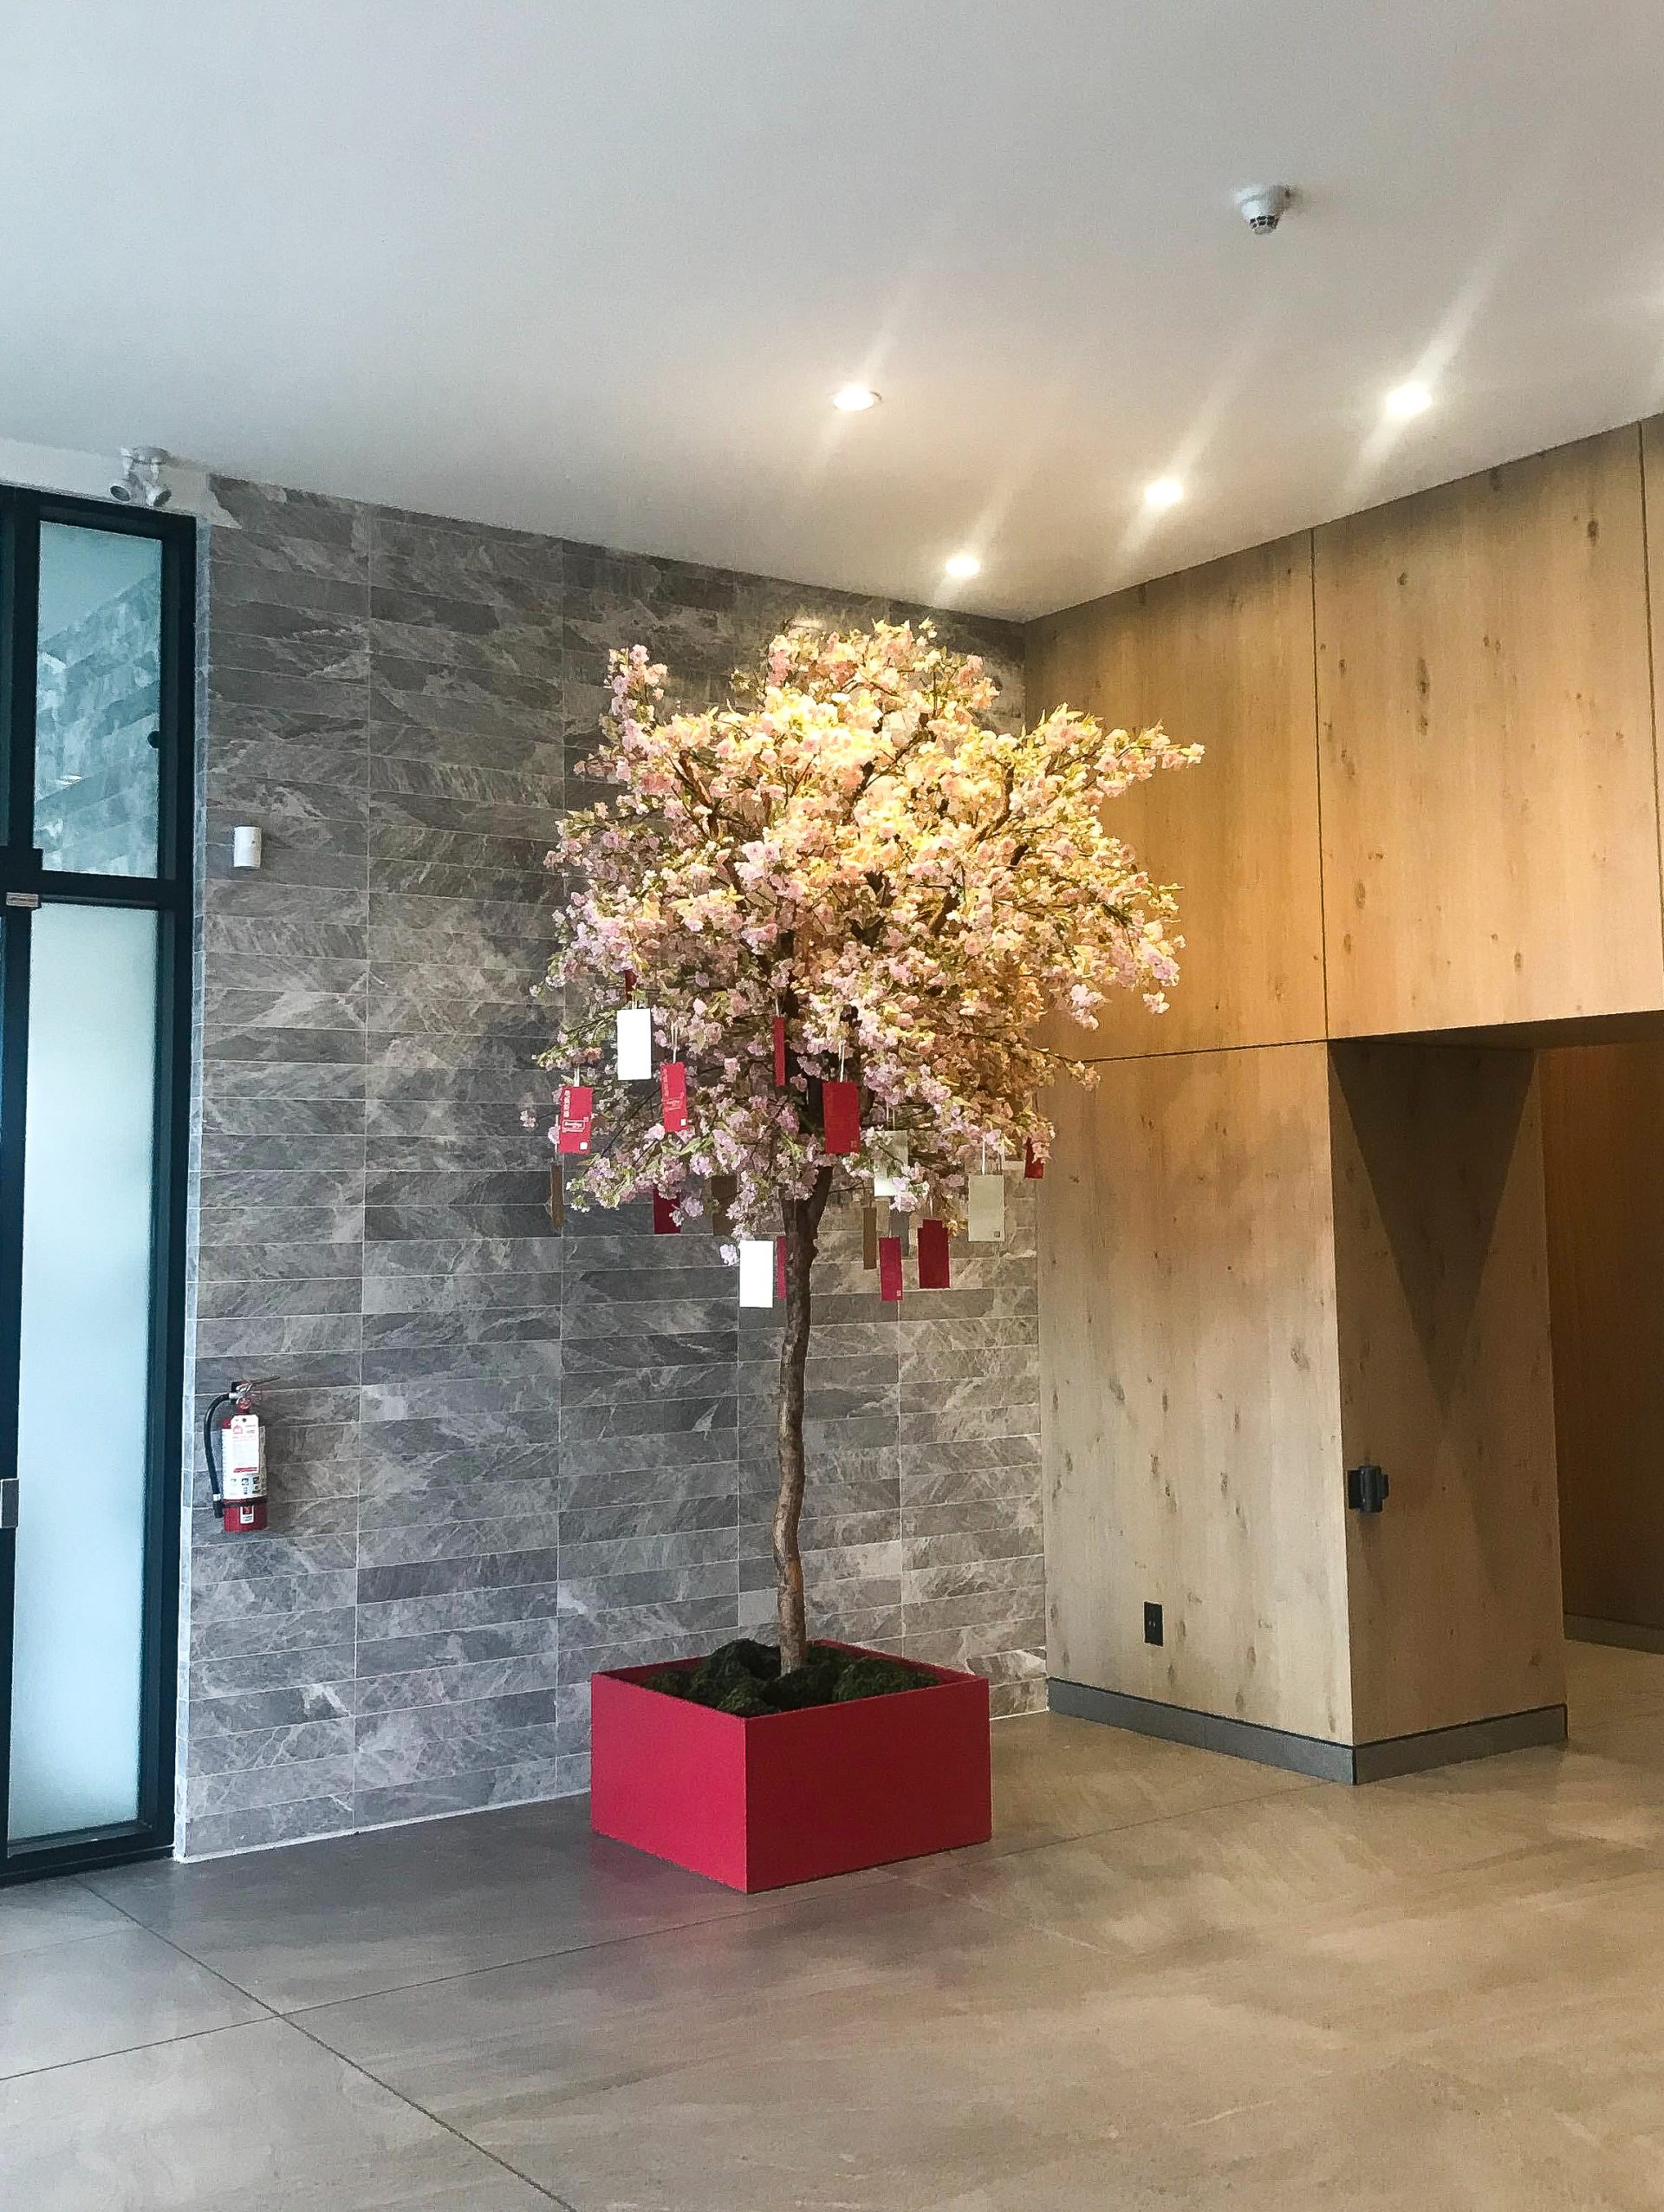 Cherry blossom wishing tree with chinese new year wishes hanging from the branches, in large red planter in commercial lobby